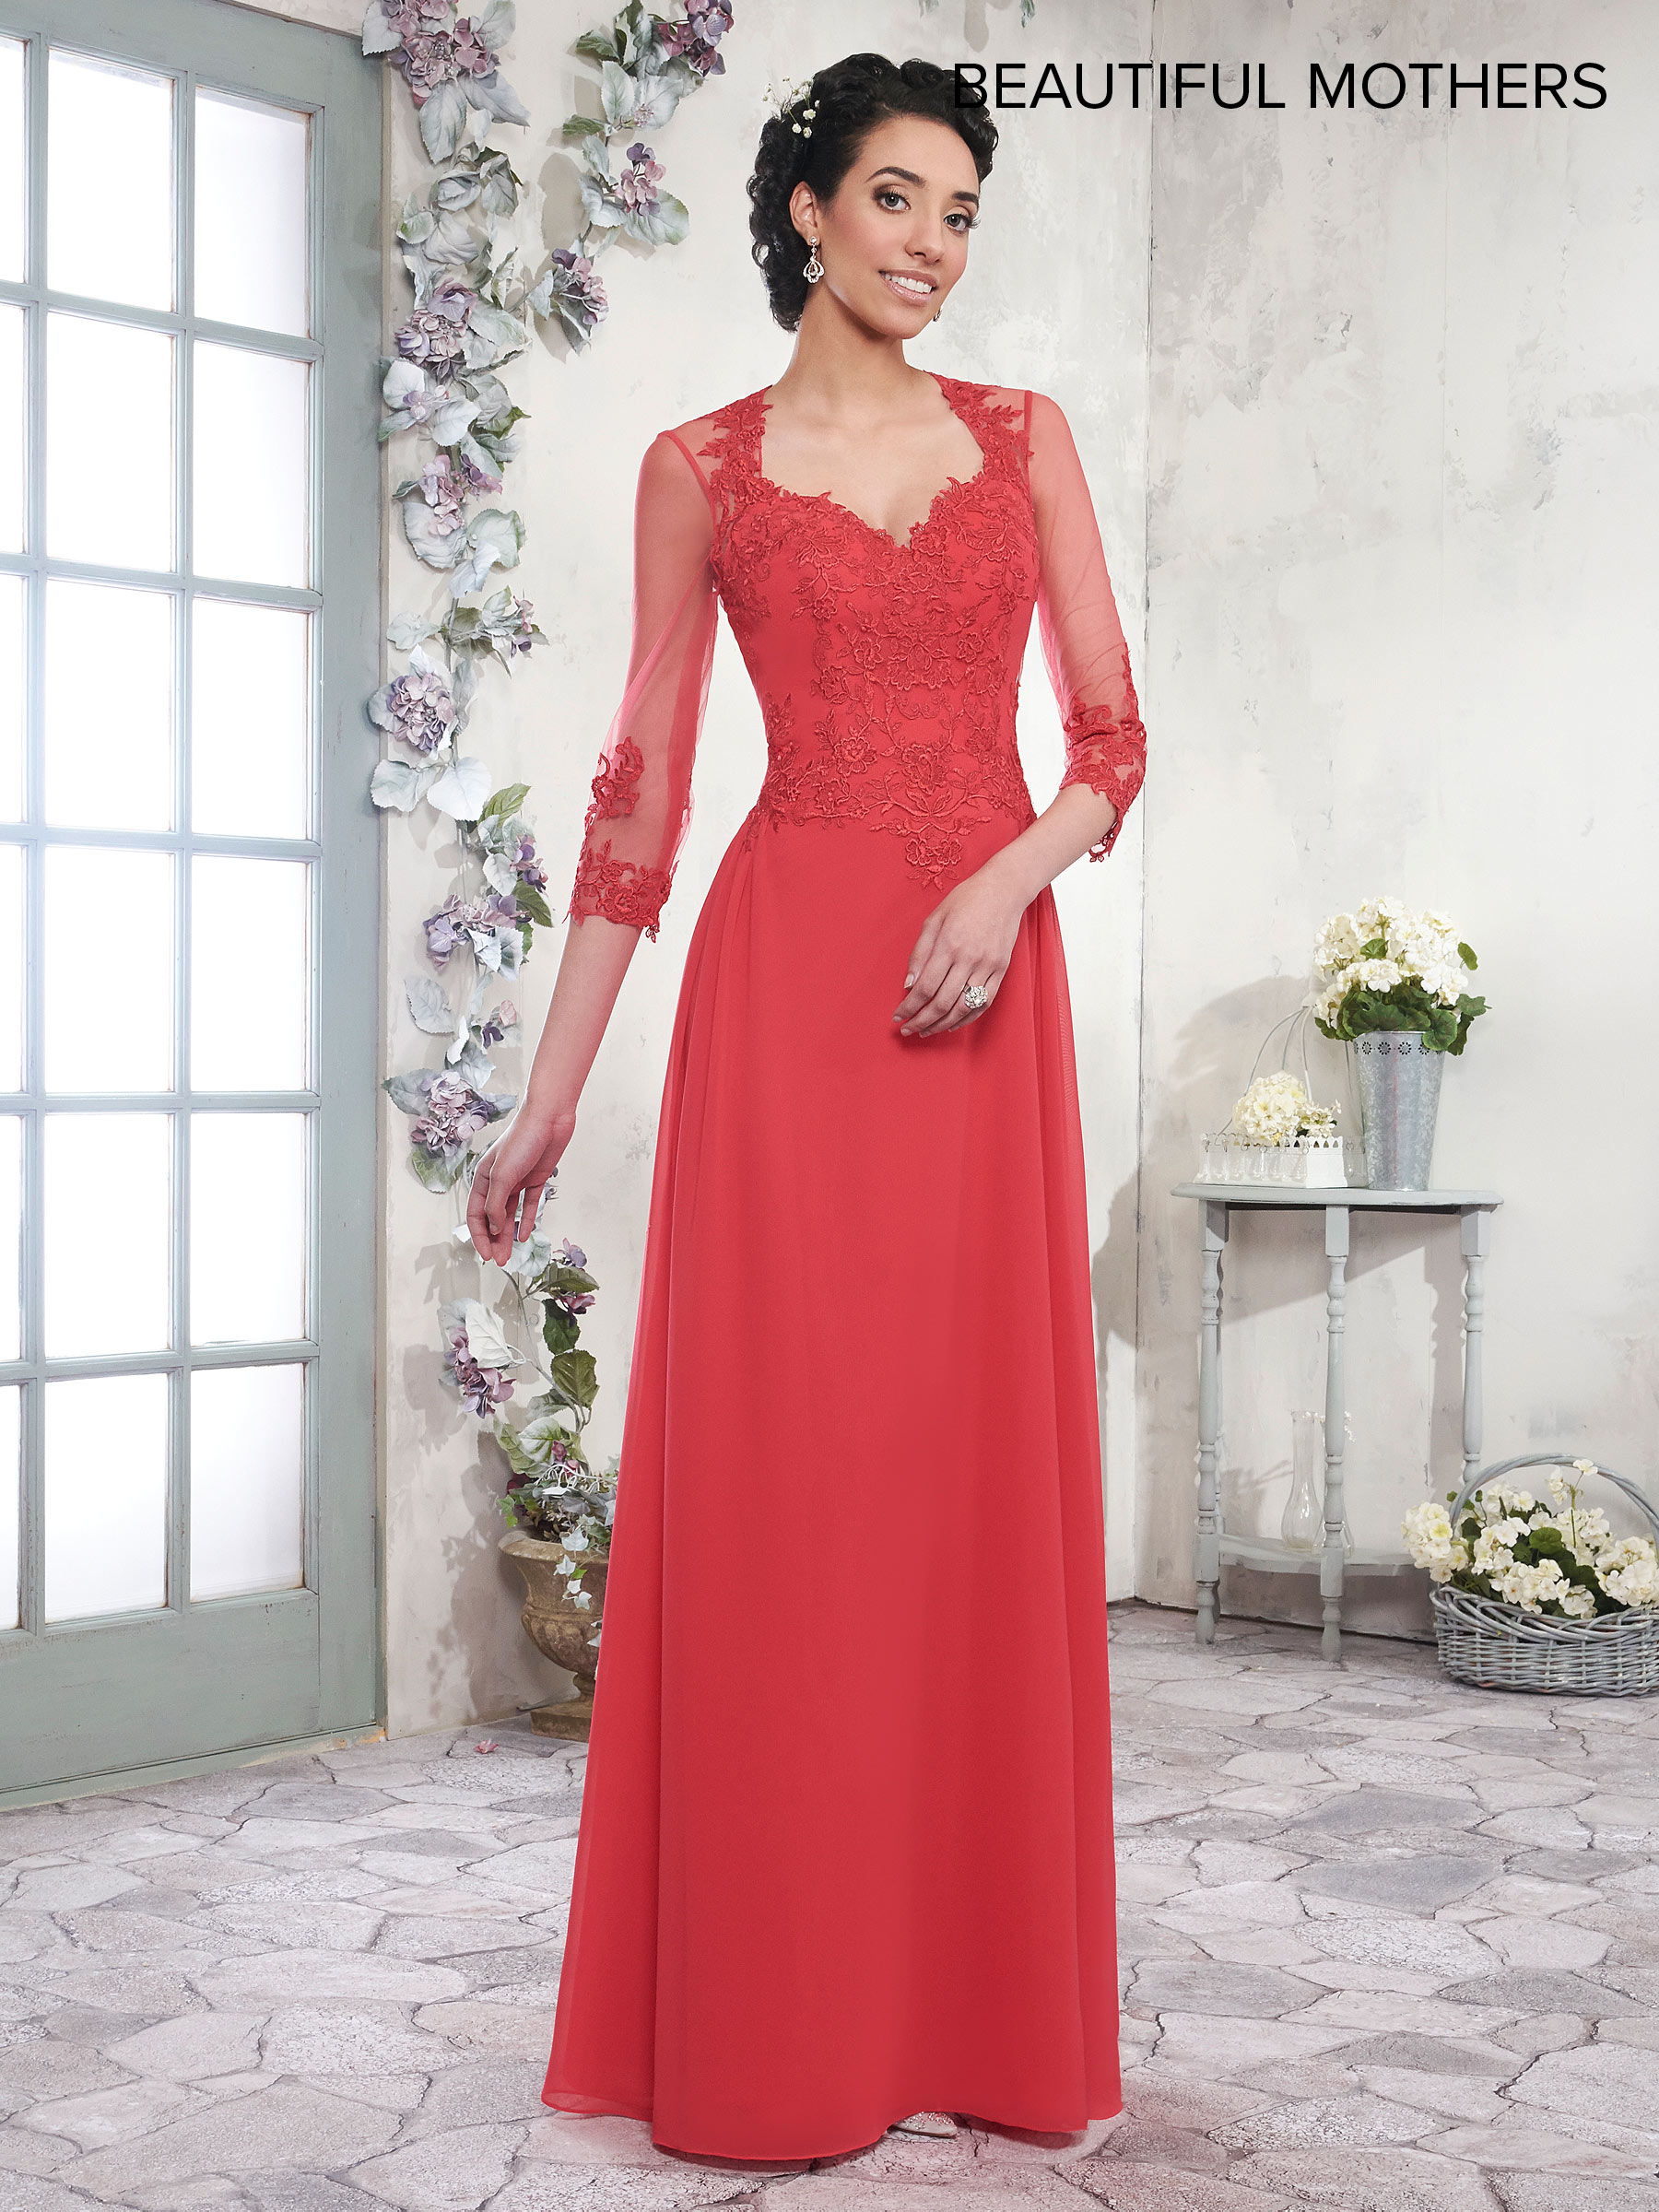 Mother Of The Bride Dresses | Beautiful Mothers | Style - MB8007